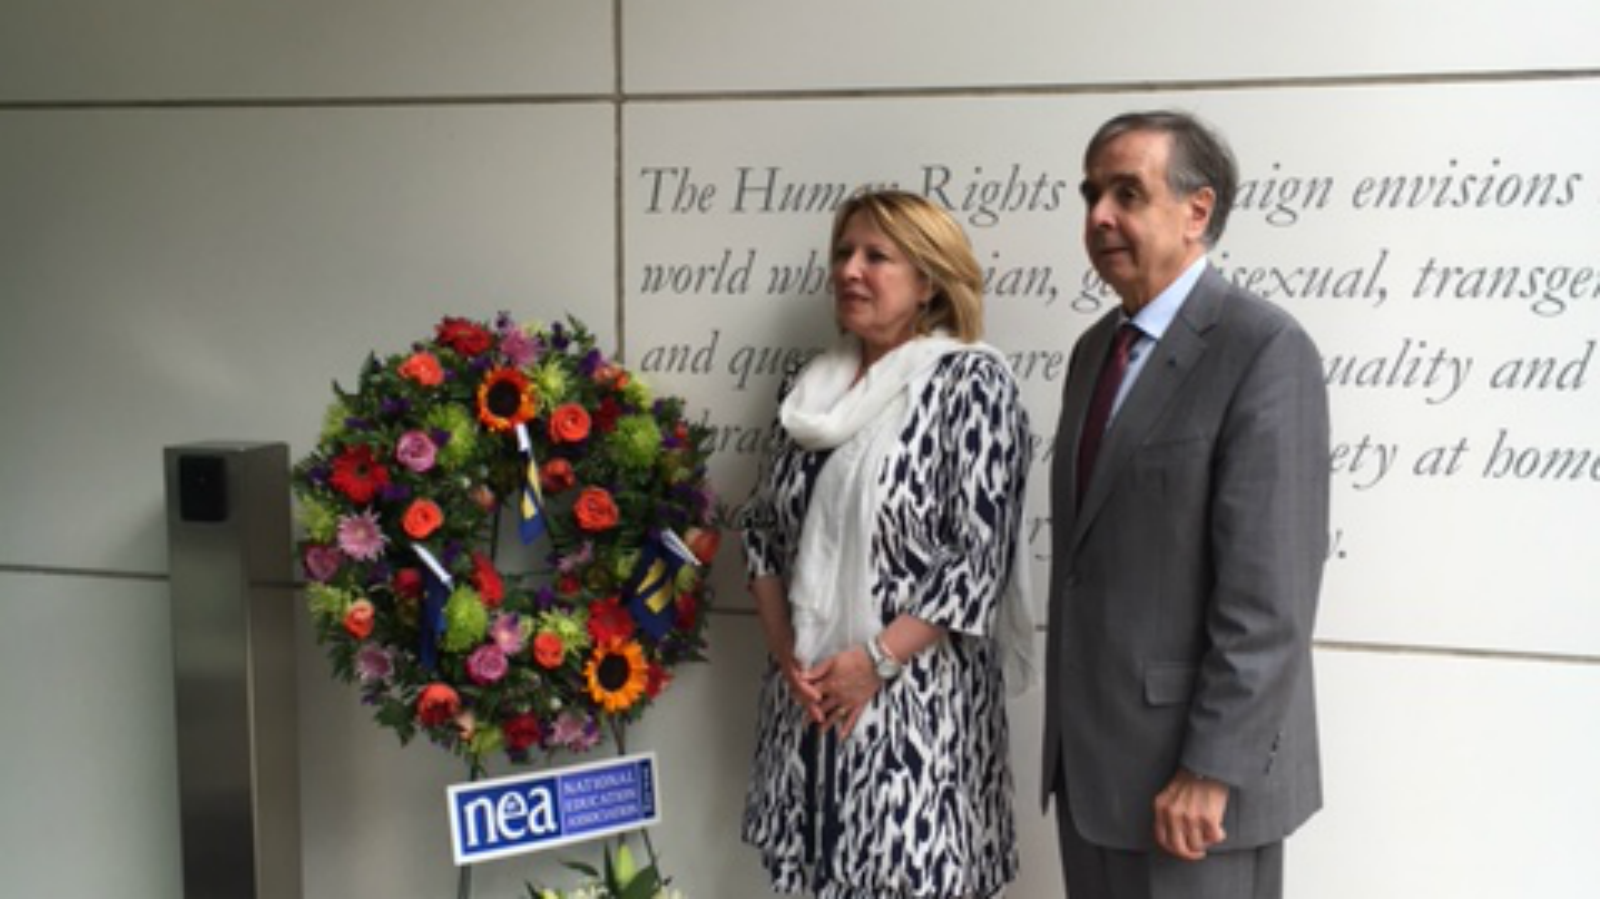 Québec Minister and Delegation Visit HRC's Office, Pay Respects to Orlando Victims